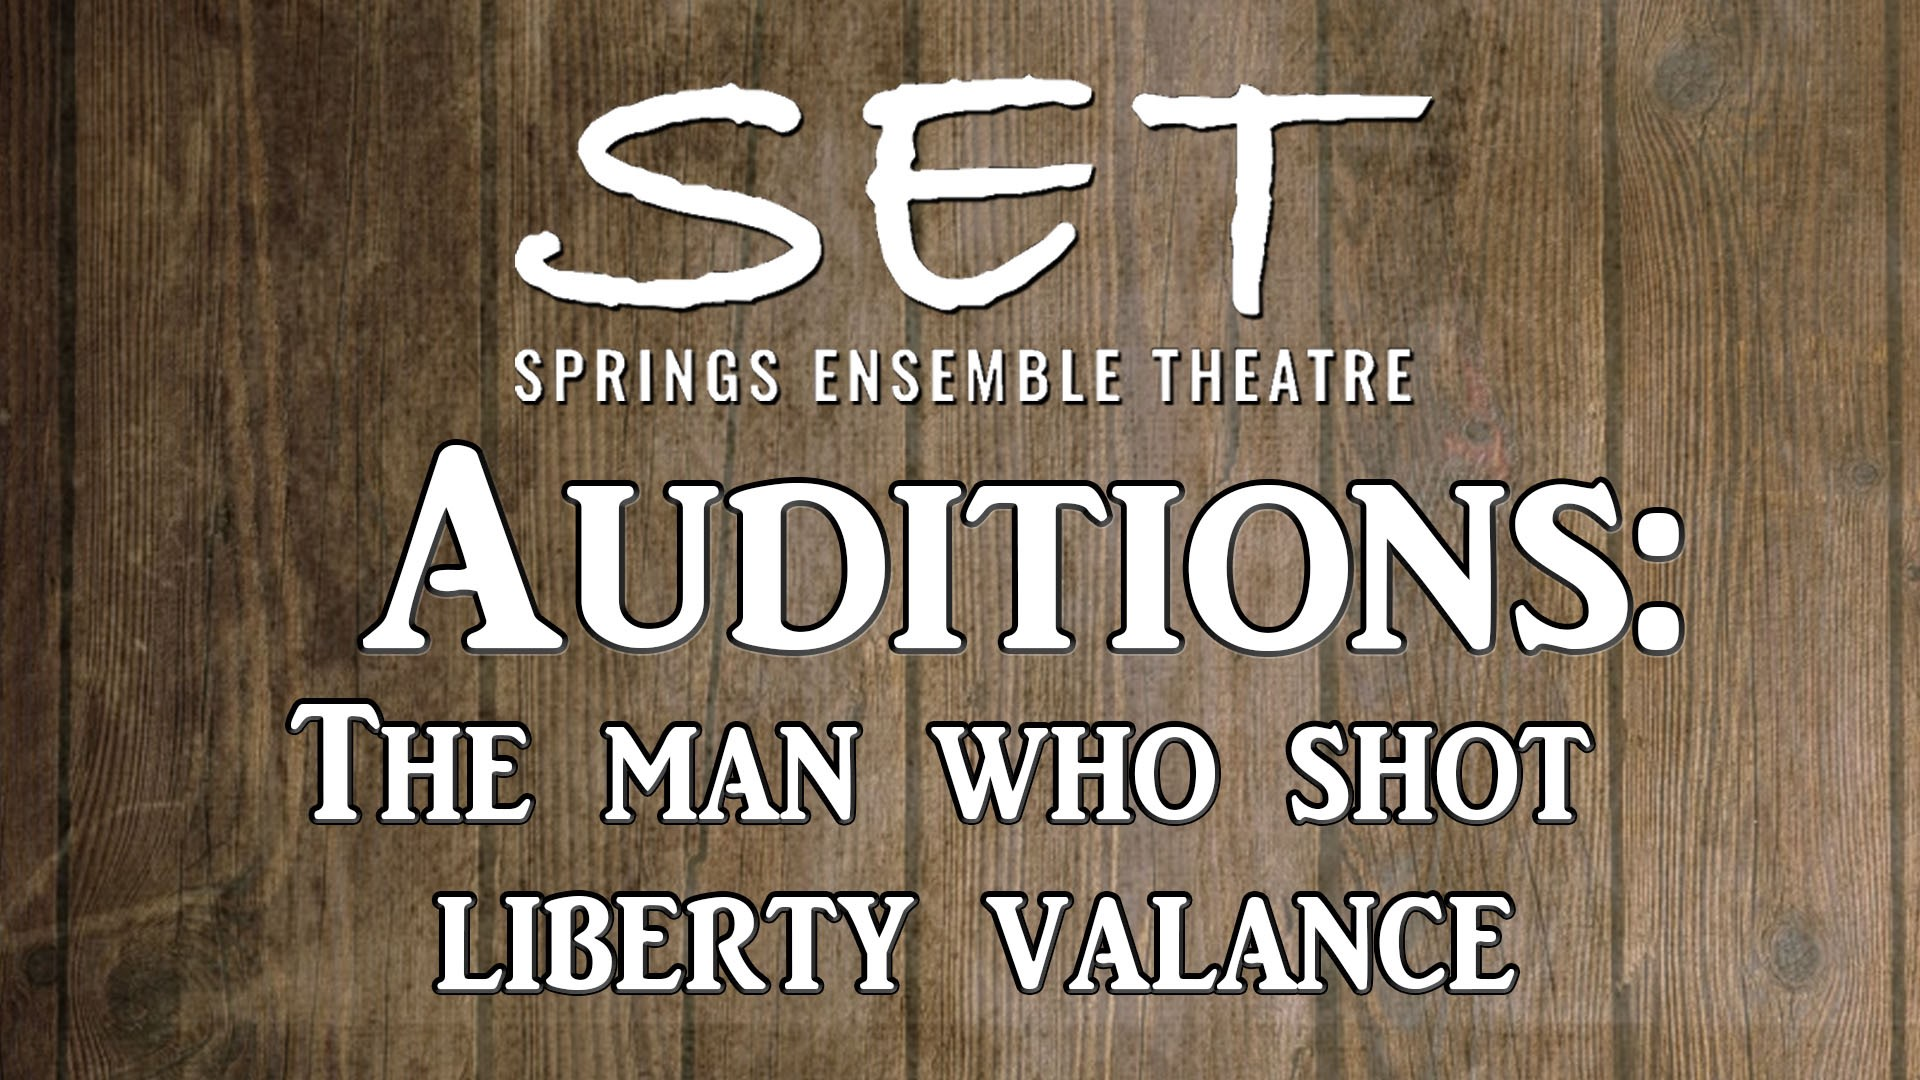 The Man Who Shot Liberty Valance Audition Cover